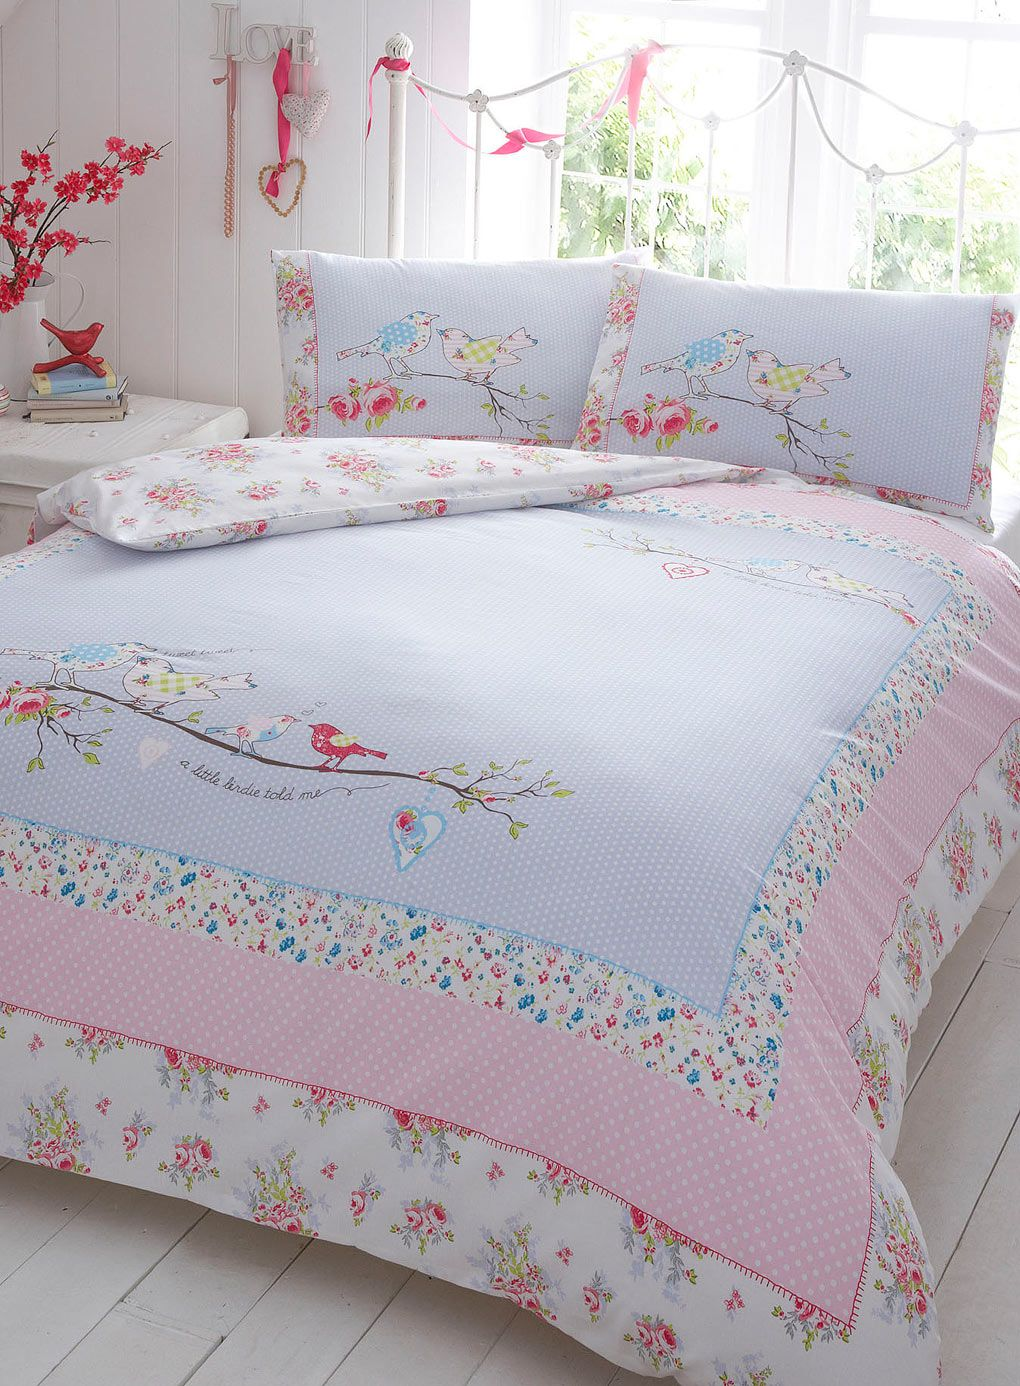 Pink A Little Birdie Told Me Bedding Set - vintage - bedding sets ... : bhs quilted bedspreads - Adamdwight.com